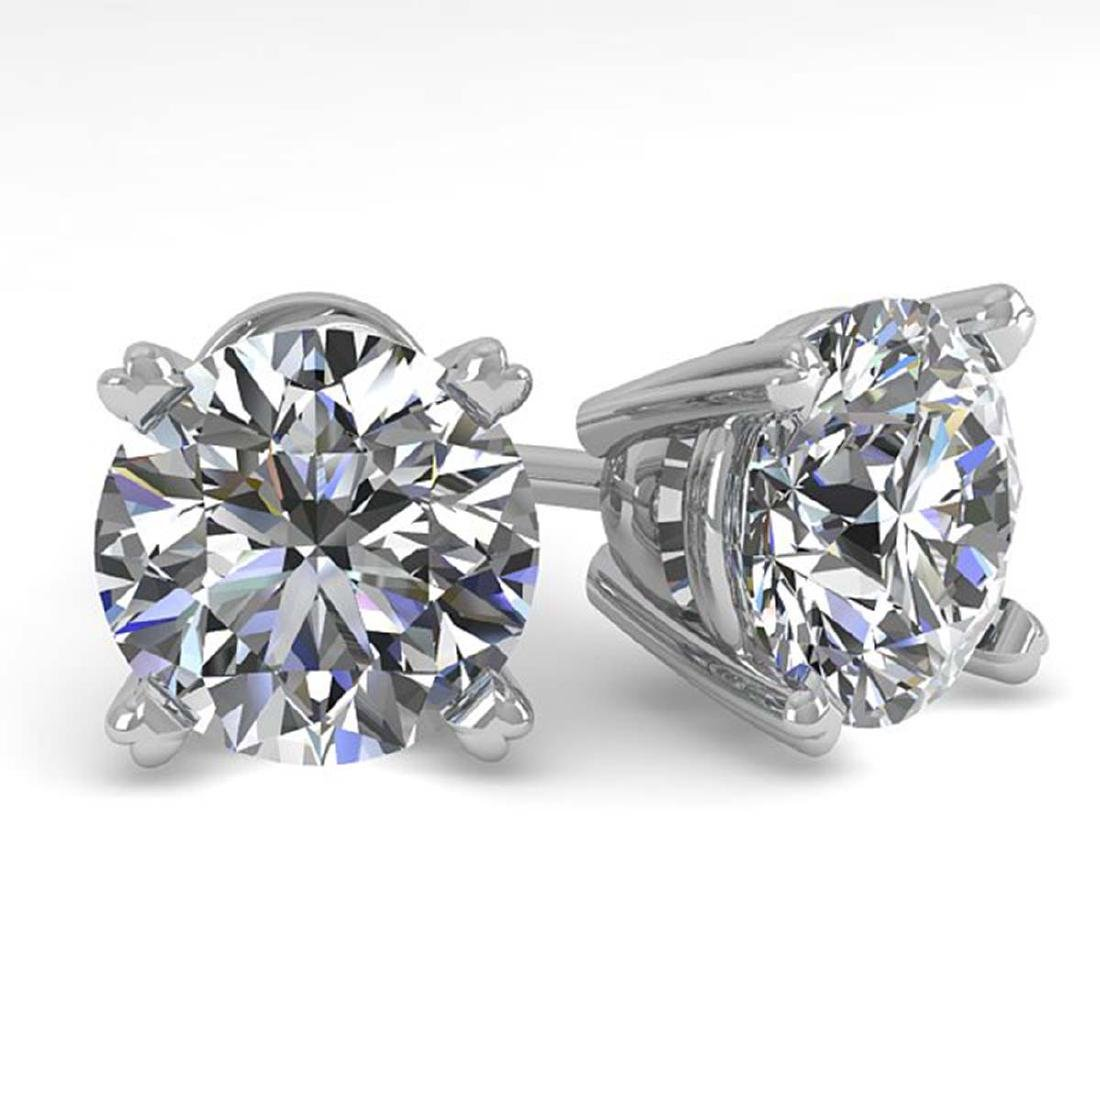 2.50 CTW Certified VS/SI Diamond Stud Earrings 14K